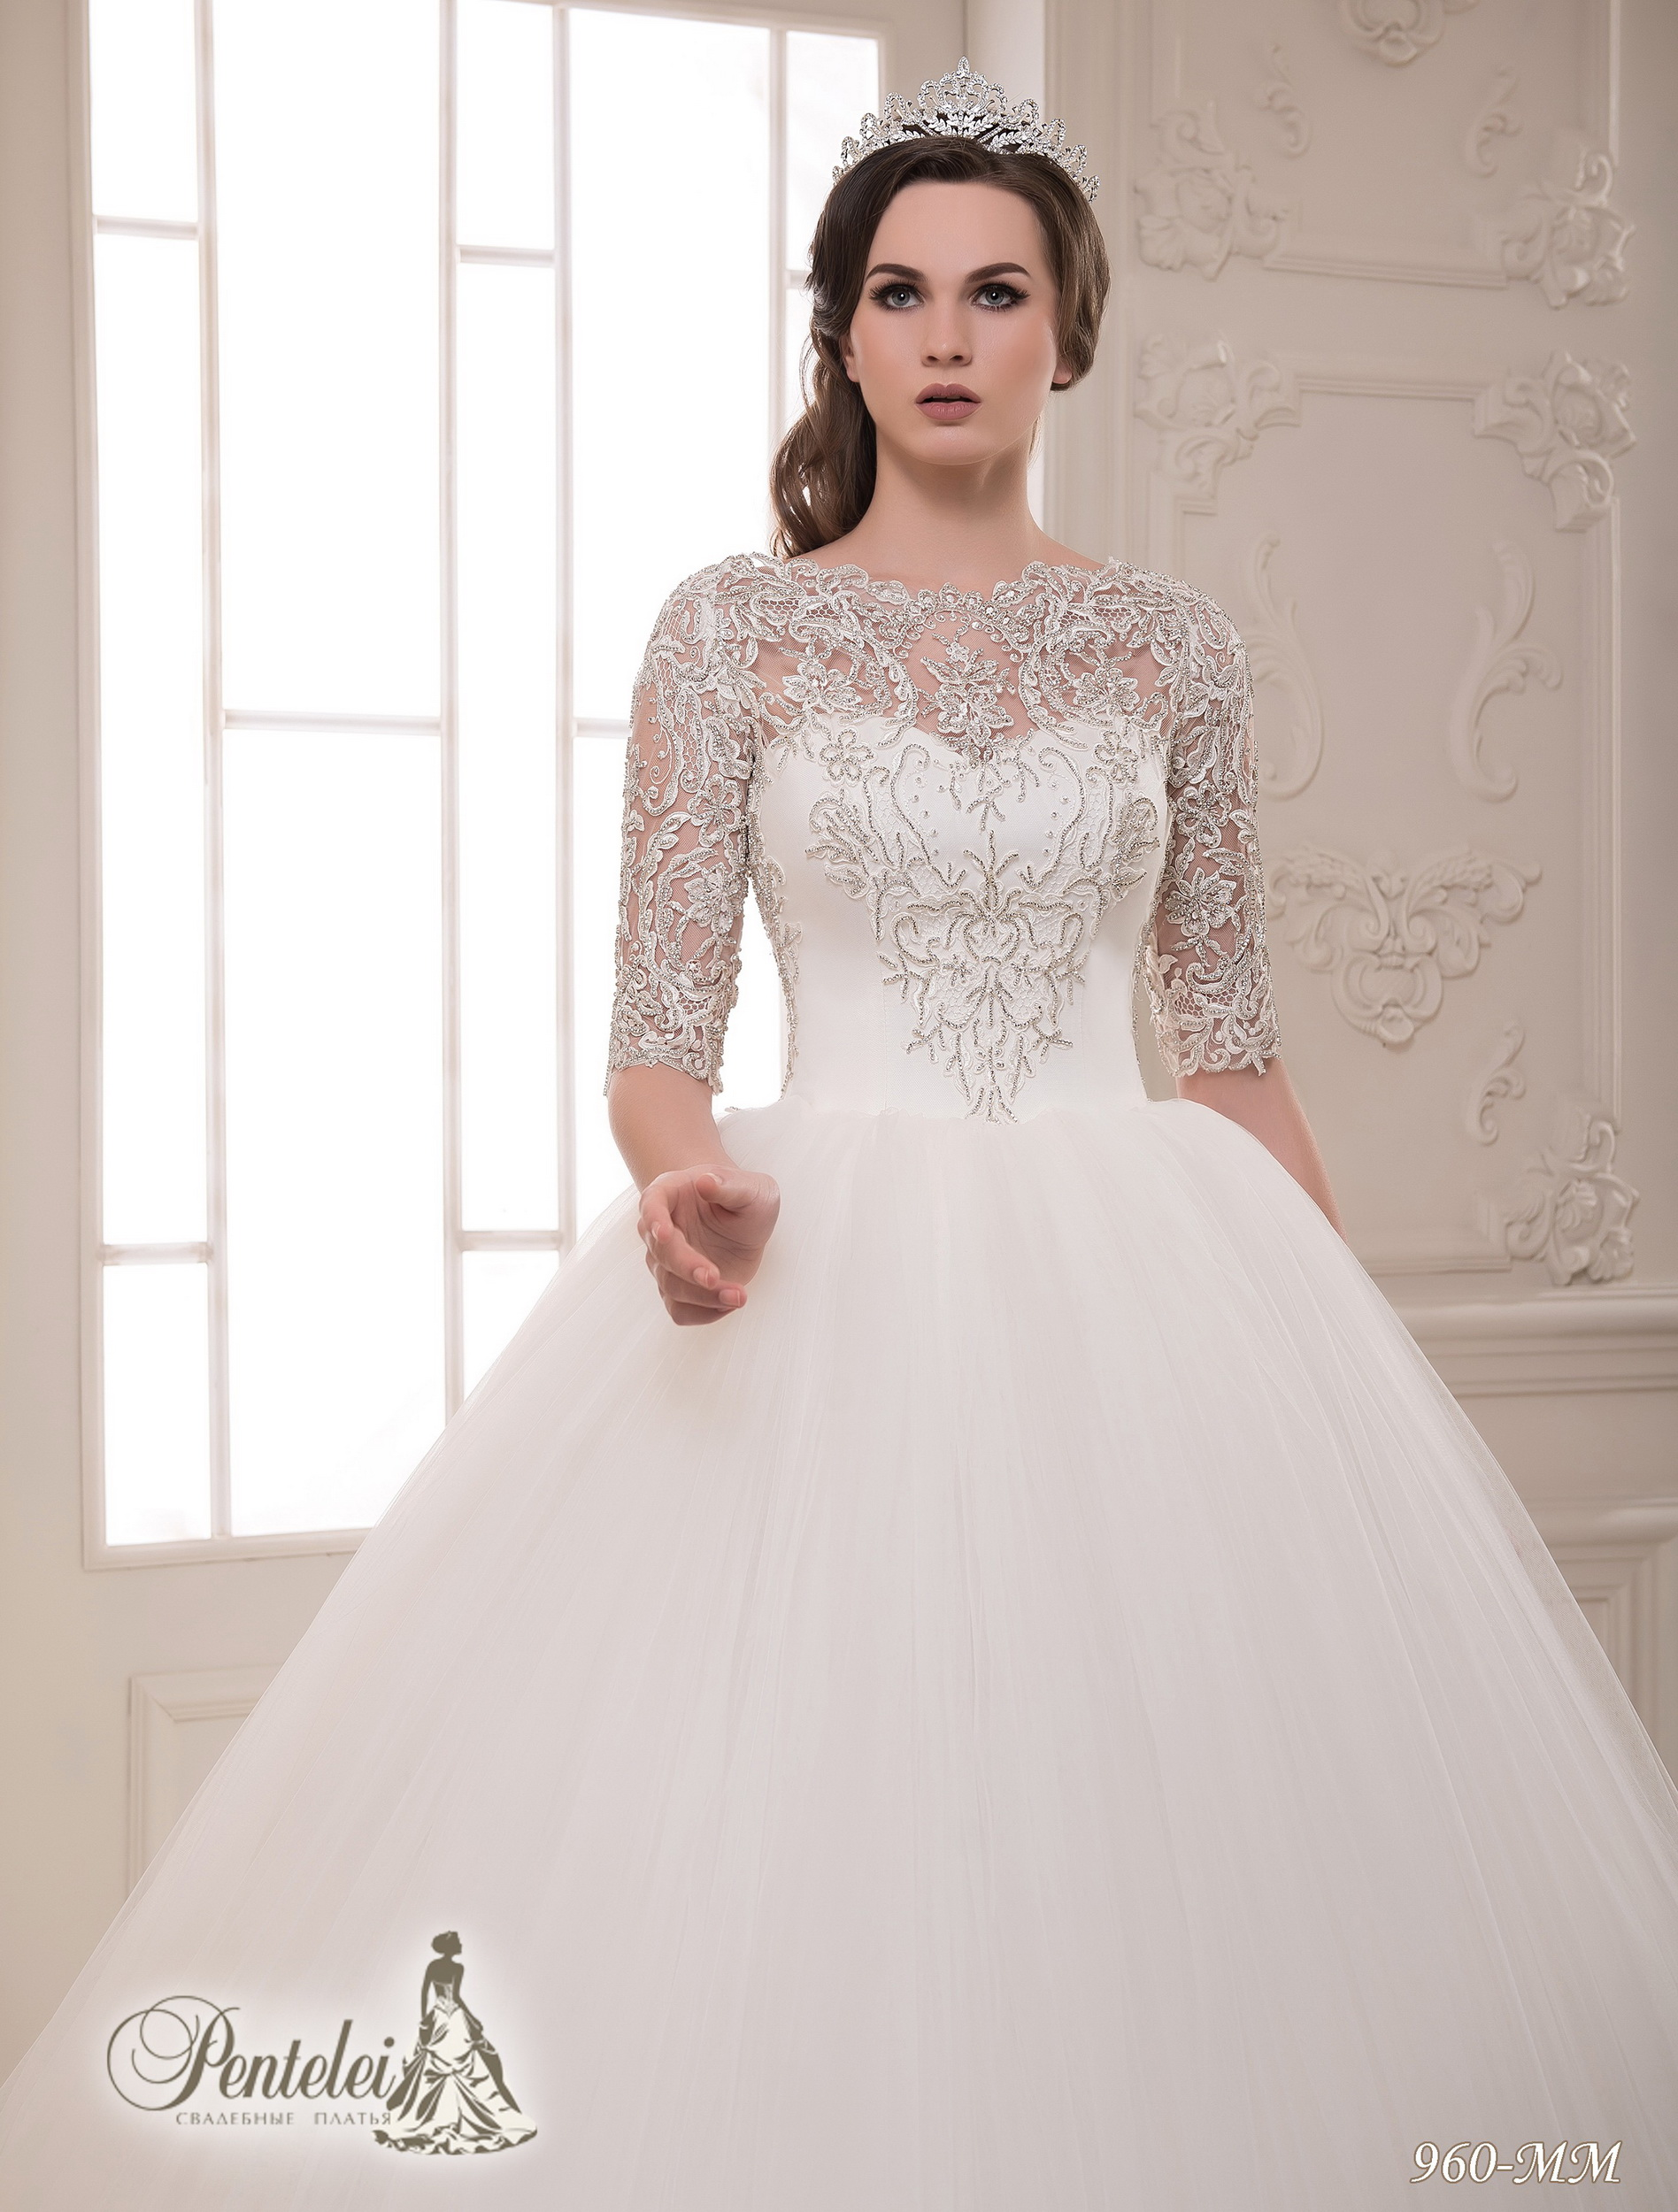 960-MM | Buy wedding dresses wholesale from Pentelei